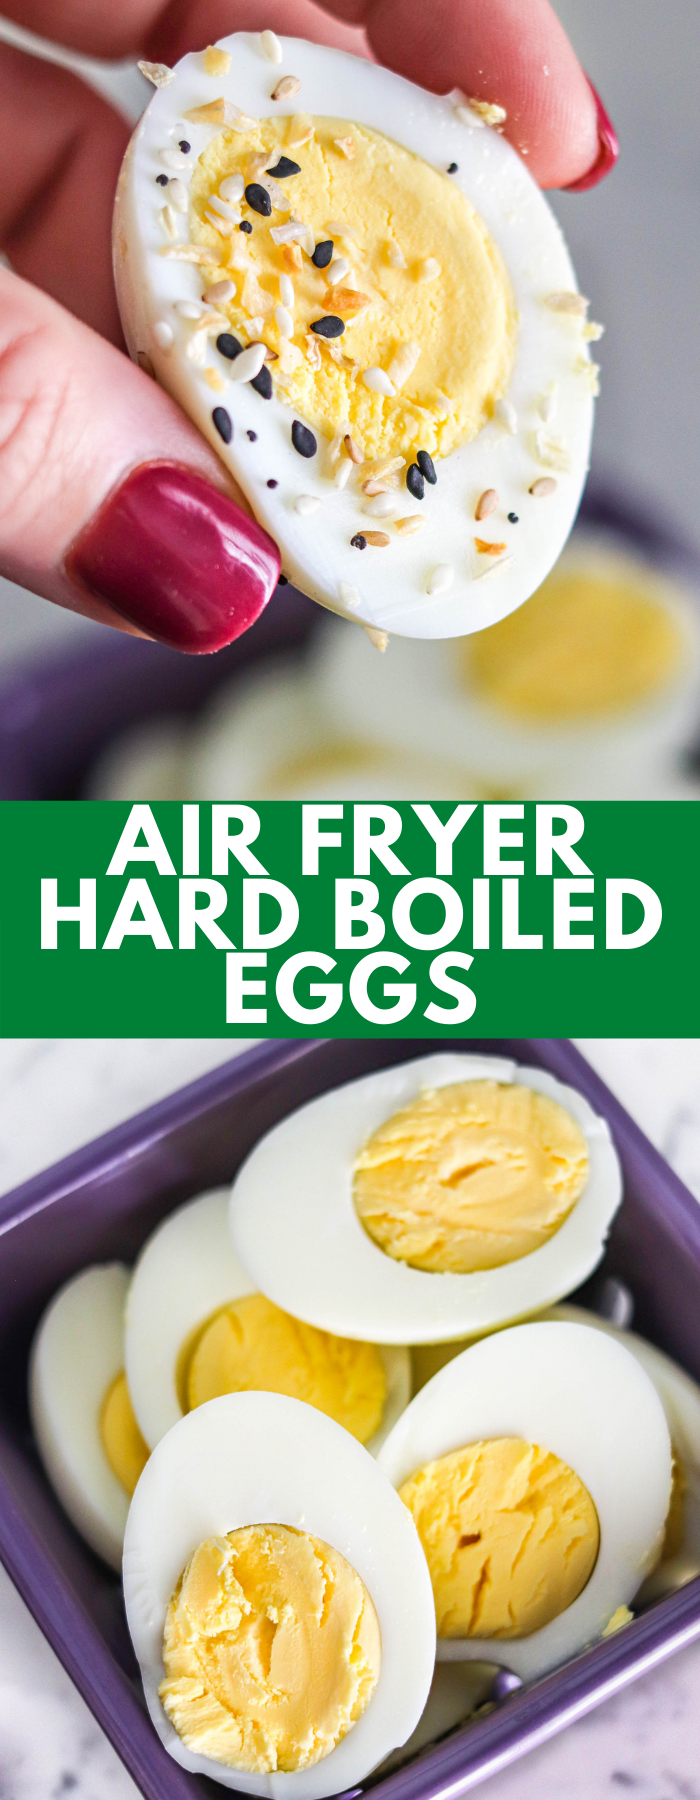 Making hard boiled eggs in the air fryer is quick and easy. No boiling water, no green ring, and they're easy to peel – these eggs are the BEST!